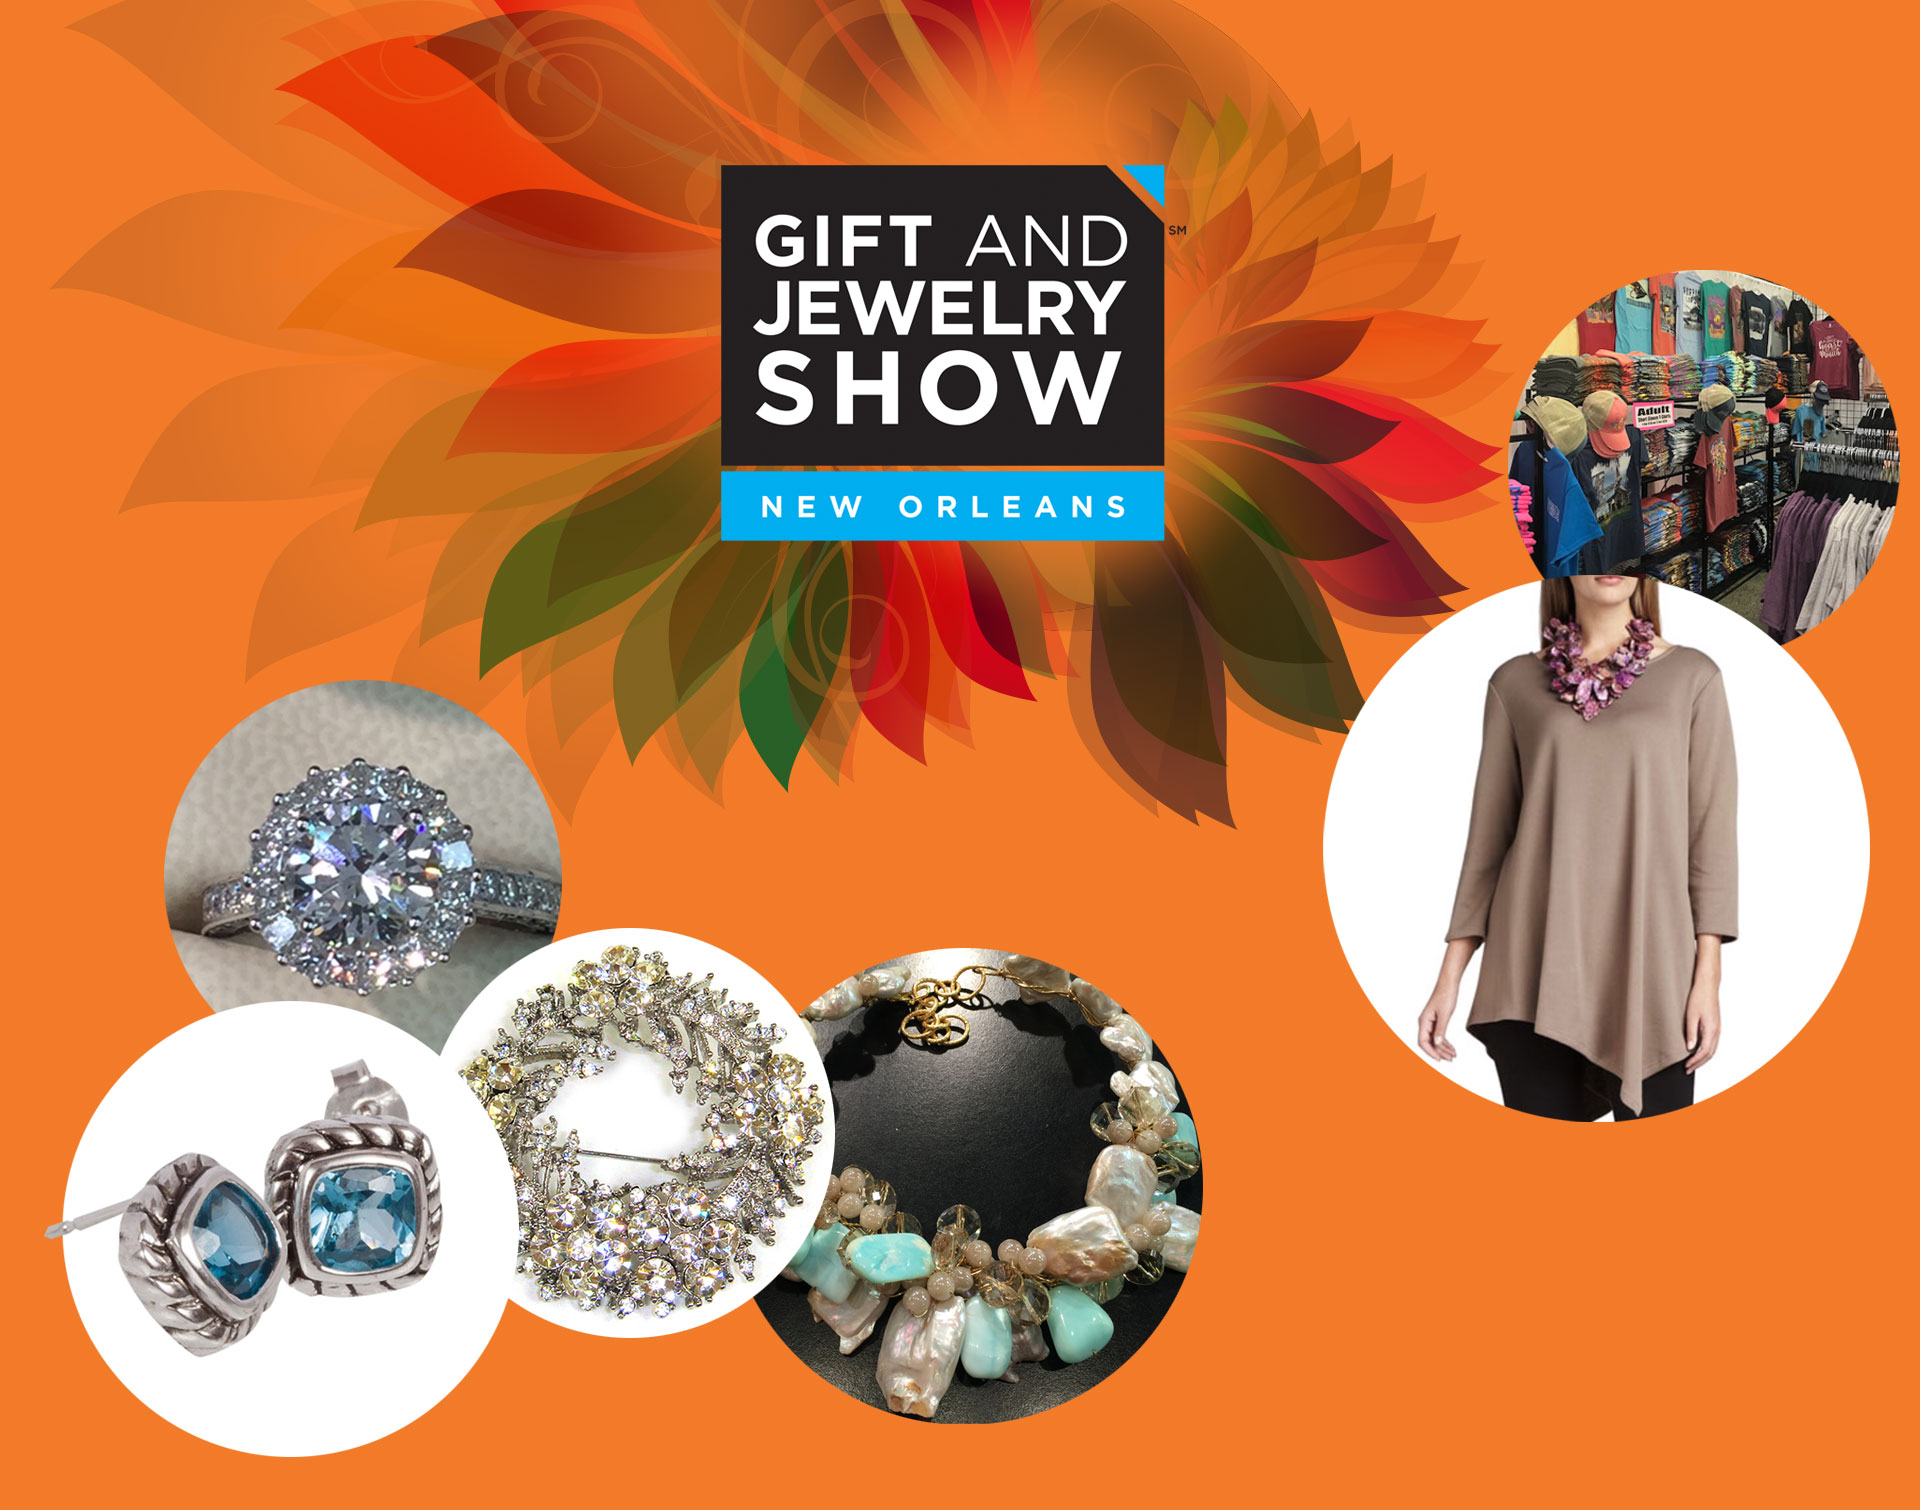 Jewelry show new orleans 2018 tickets style guru for Jewelry show chicago 2018